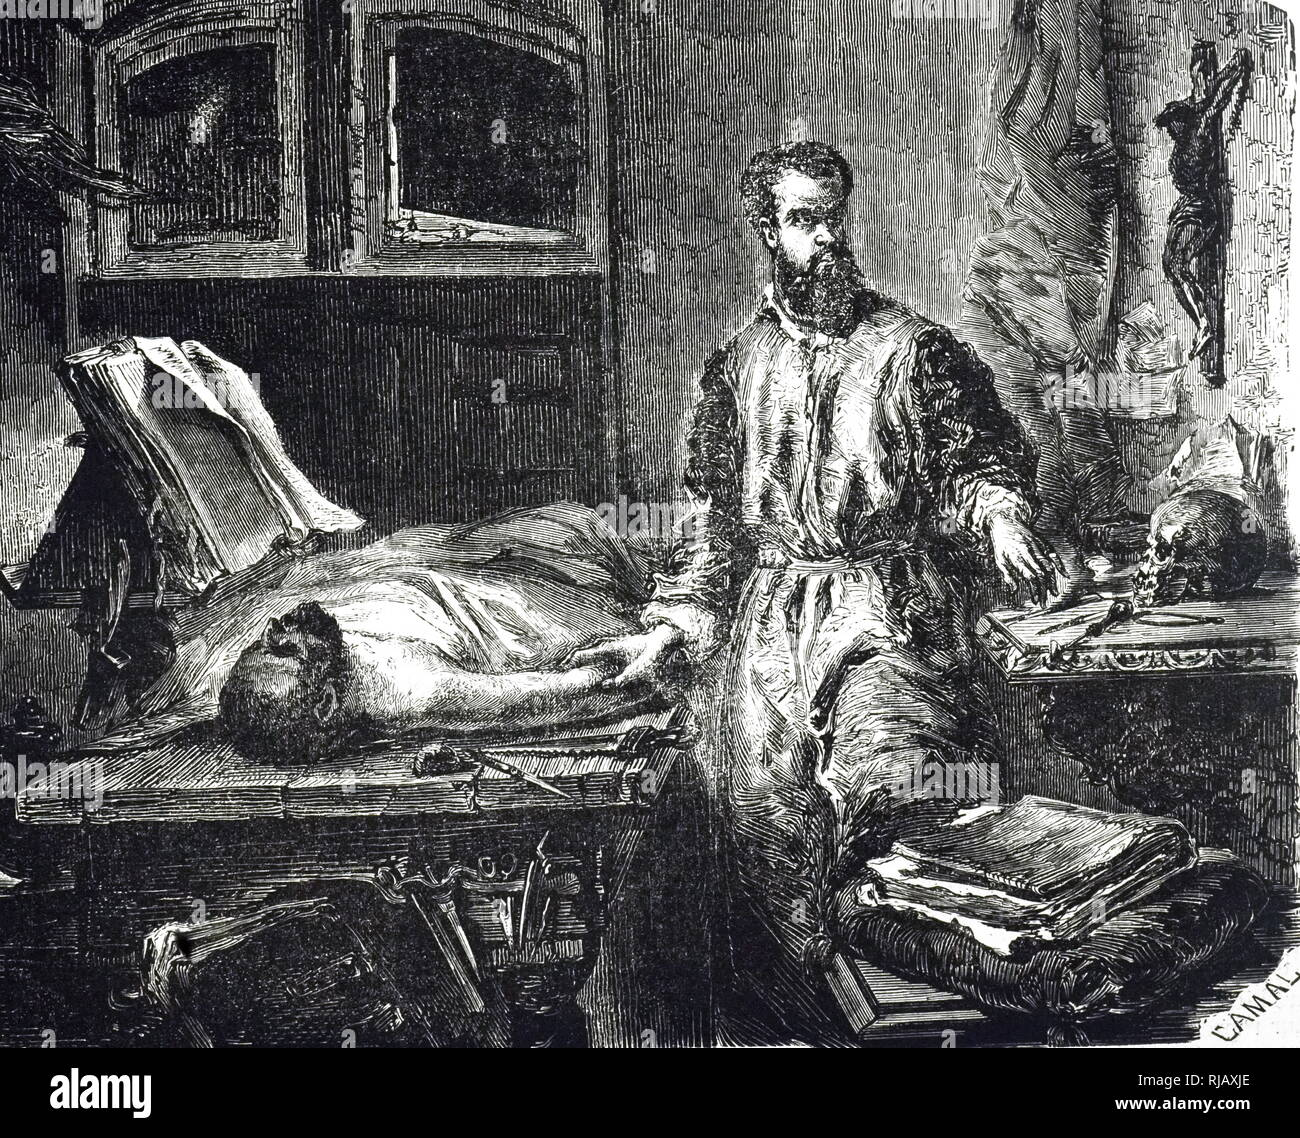 An engraving depicting Andreas Vesalius (1514-1564) a Flemish anatomist, physician, and author. After a picture by Edouard Hamman (1819-1888) a Belgian painter and engraver. Dated 19th century - Stock Image